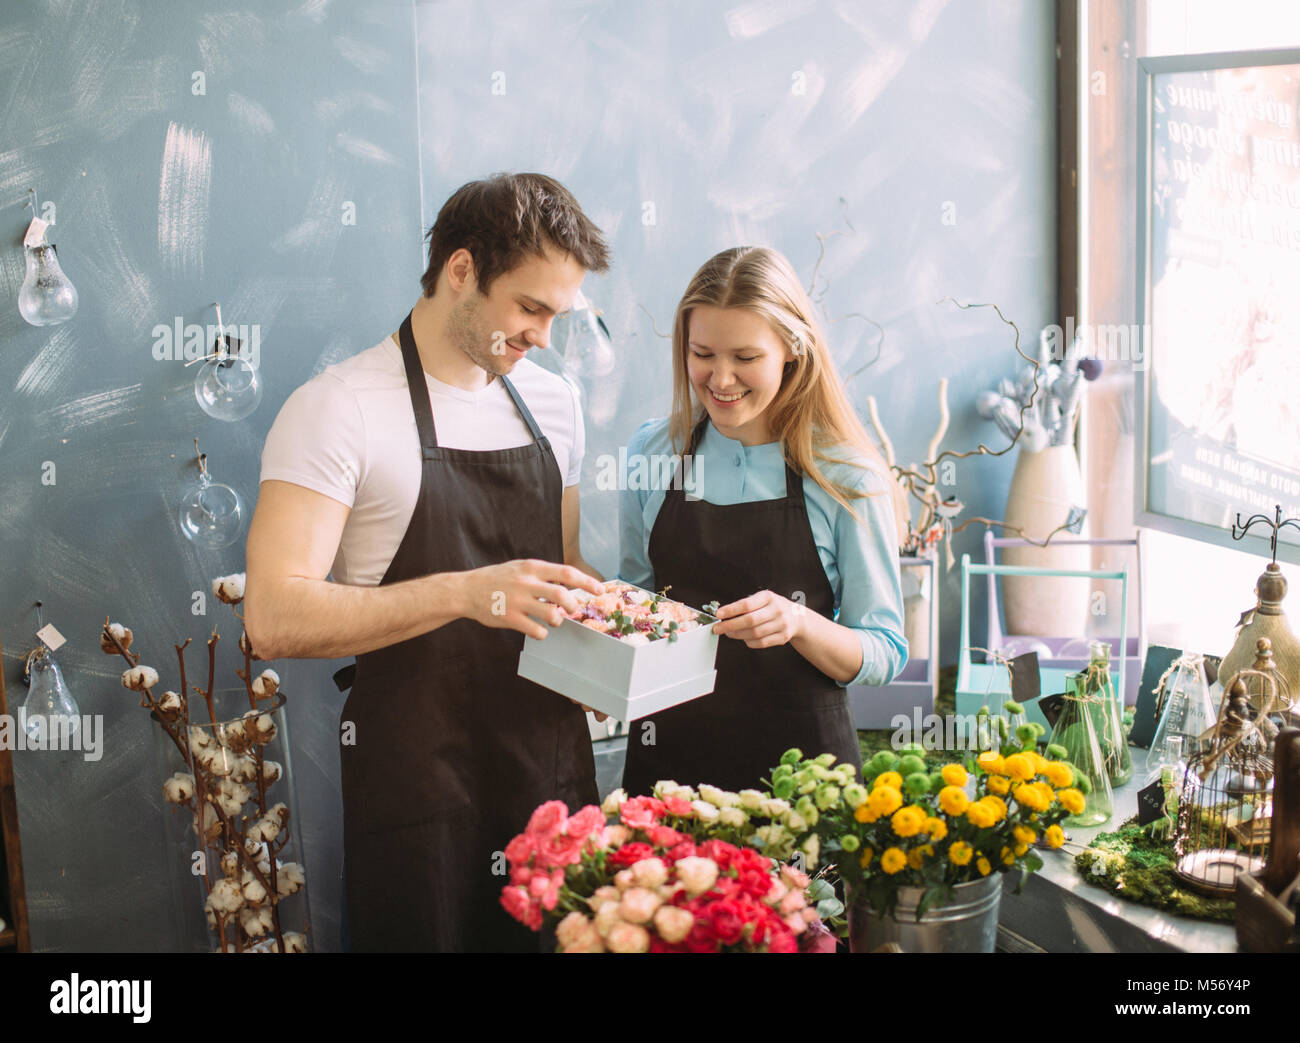 man and woman preparing surprise for purchaser - Stock Image